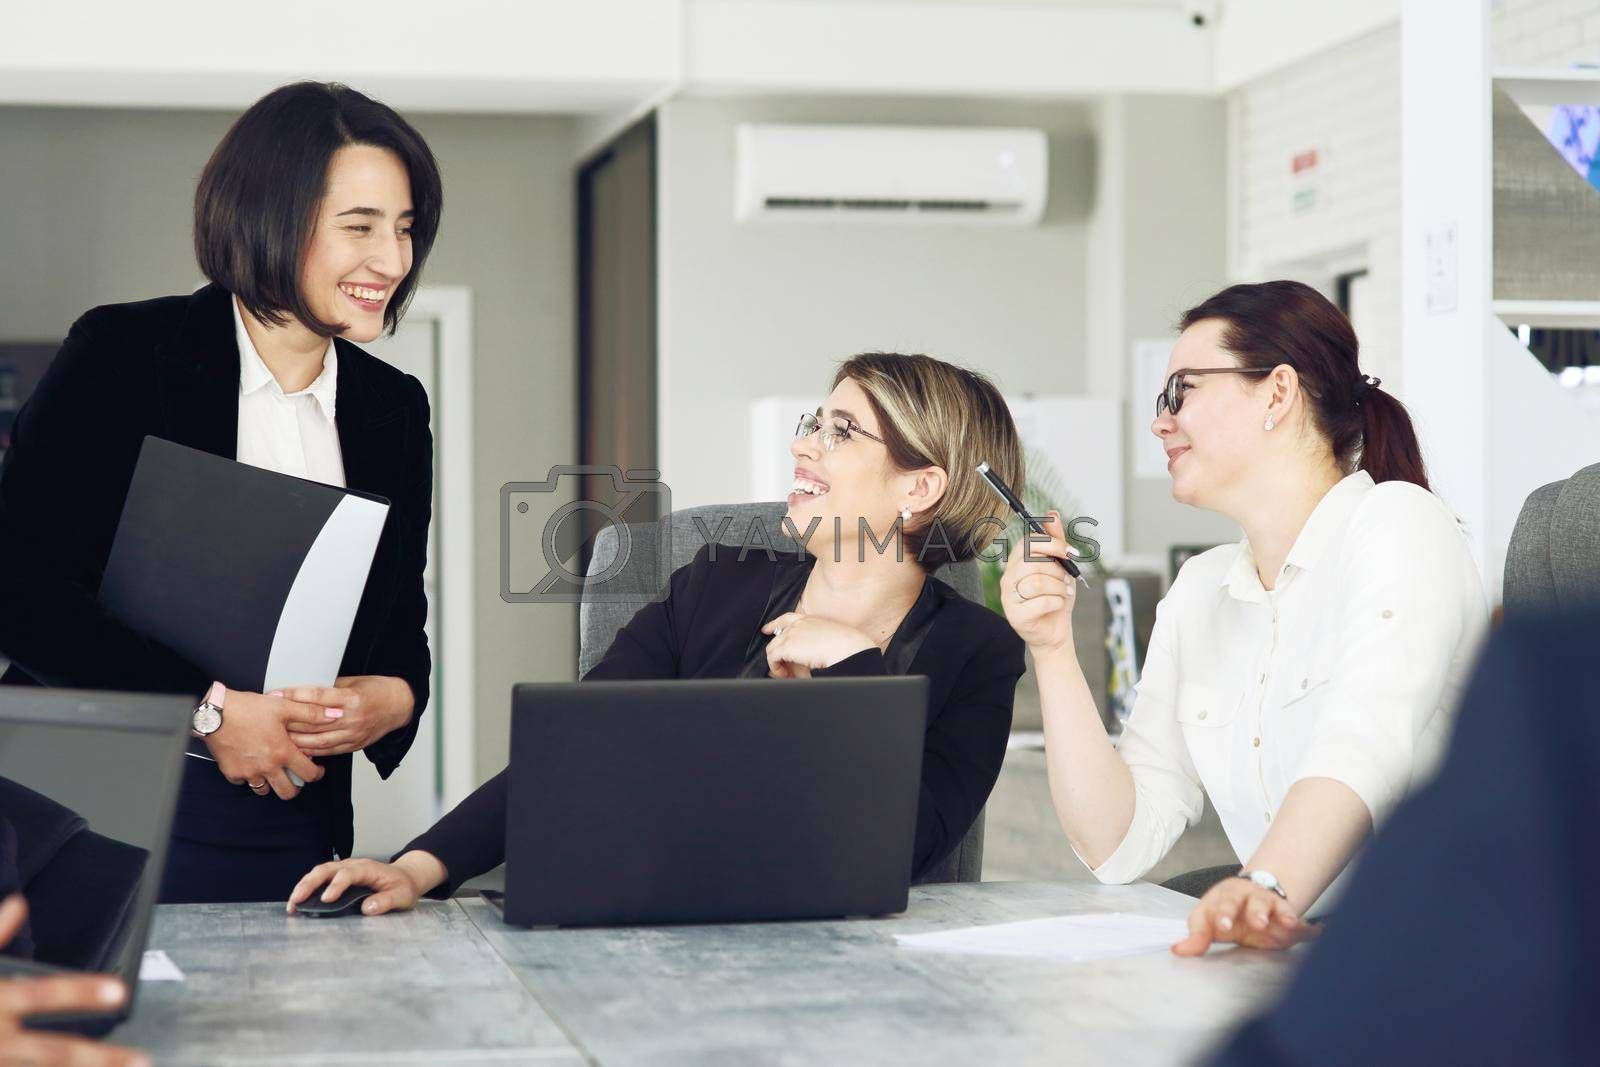 Royalty free image of Three young successful business women in the office, together, happily working on a project by selinsmo